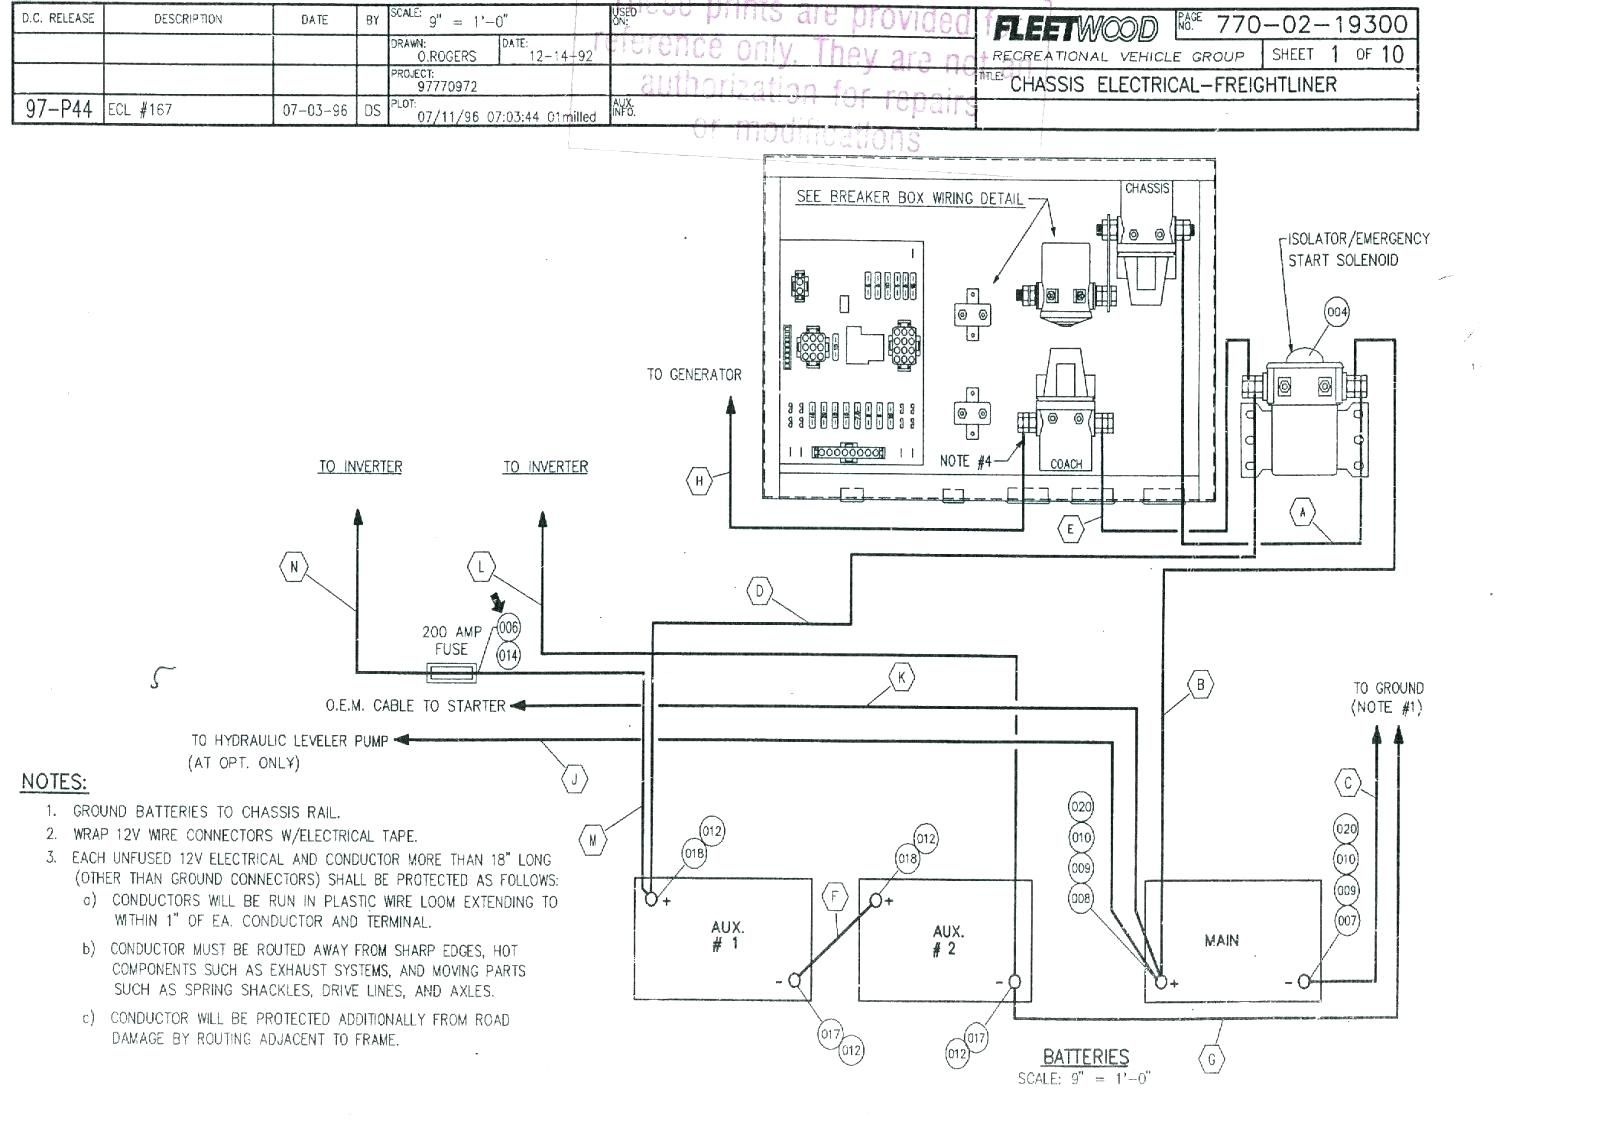 medium resolution of 1984 airstream wiring diagram wiring diagramwinnebago wiring diagram pictures wiring diagram wiring diagramwinnebago wiring diagram pictures